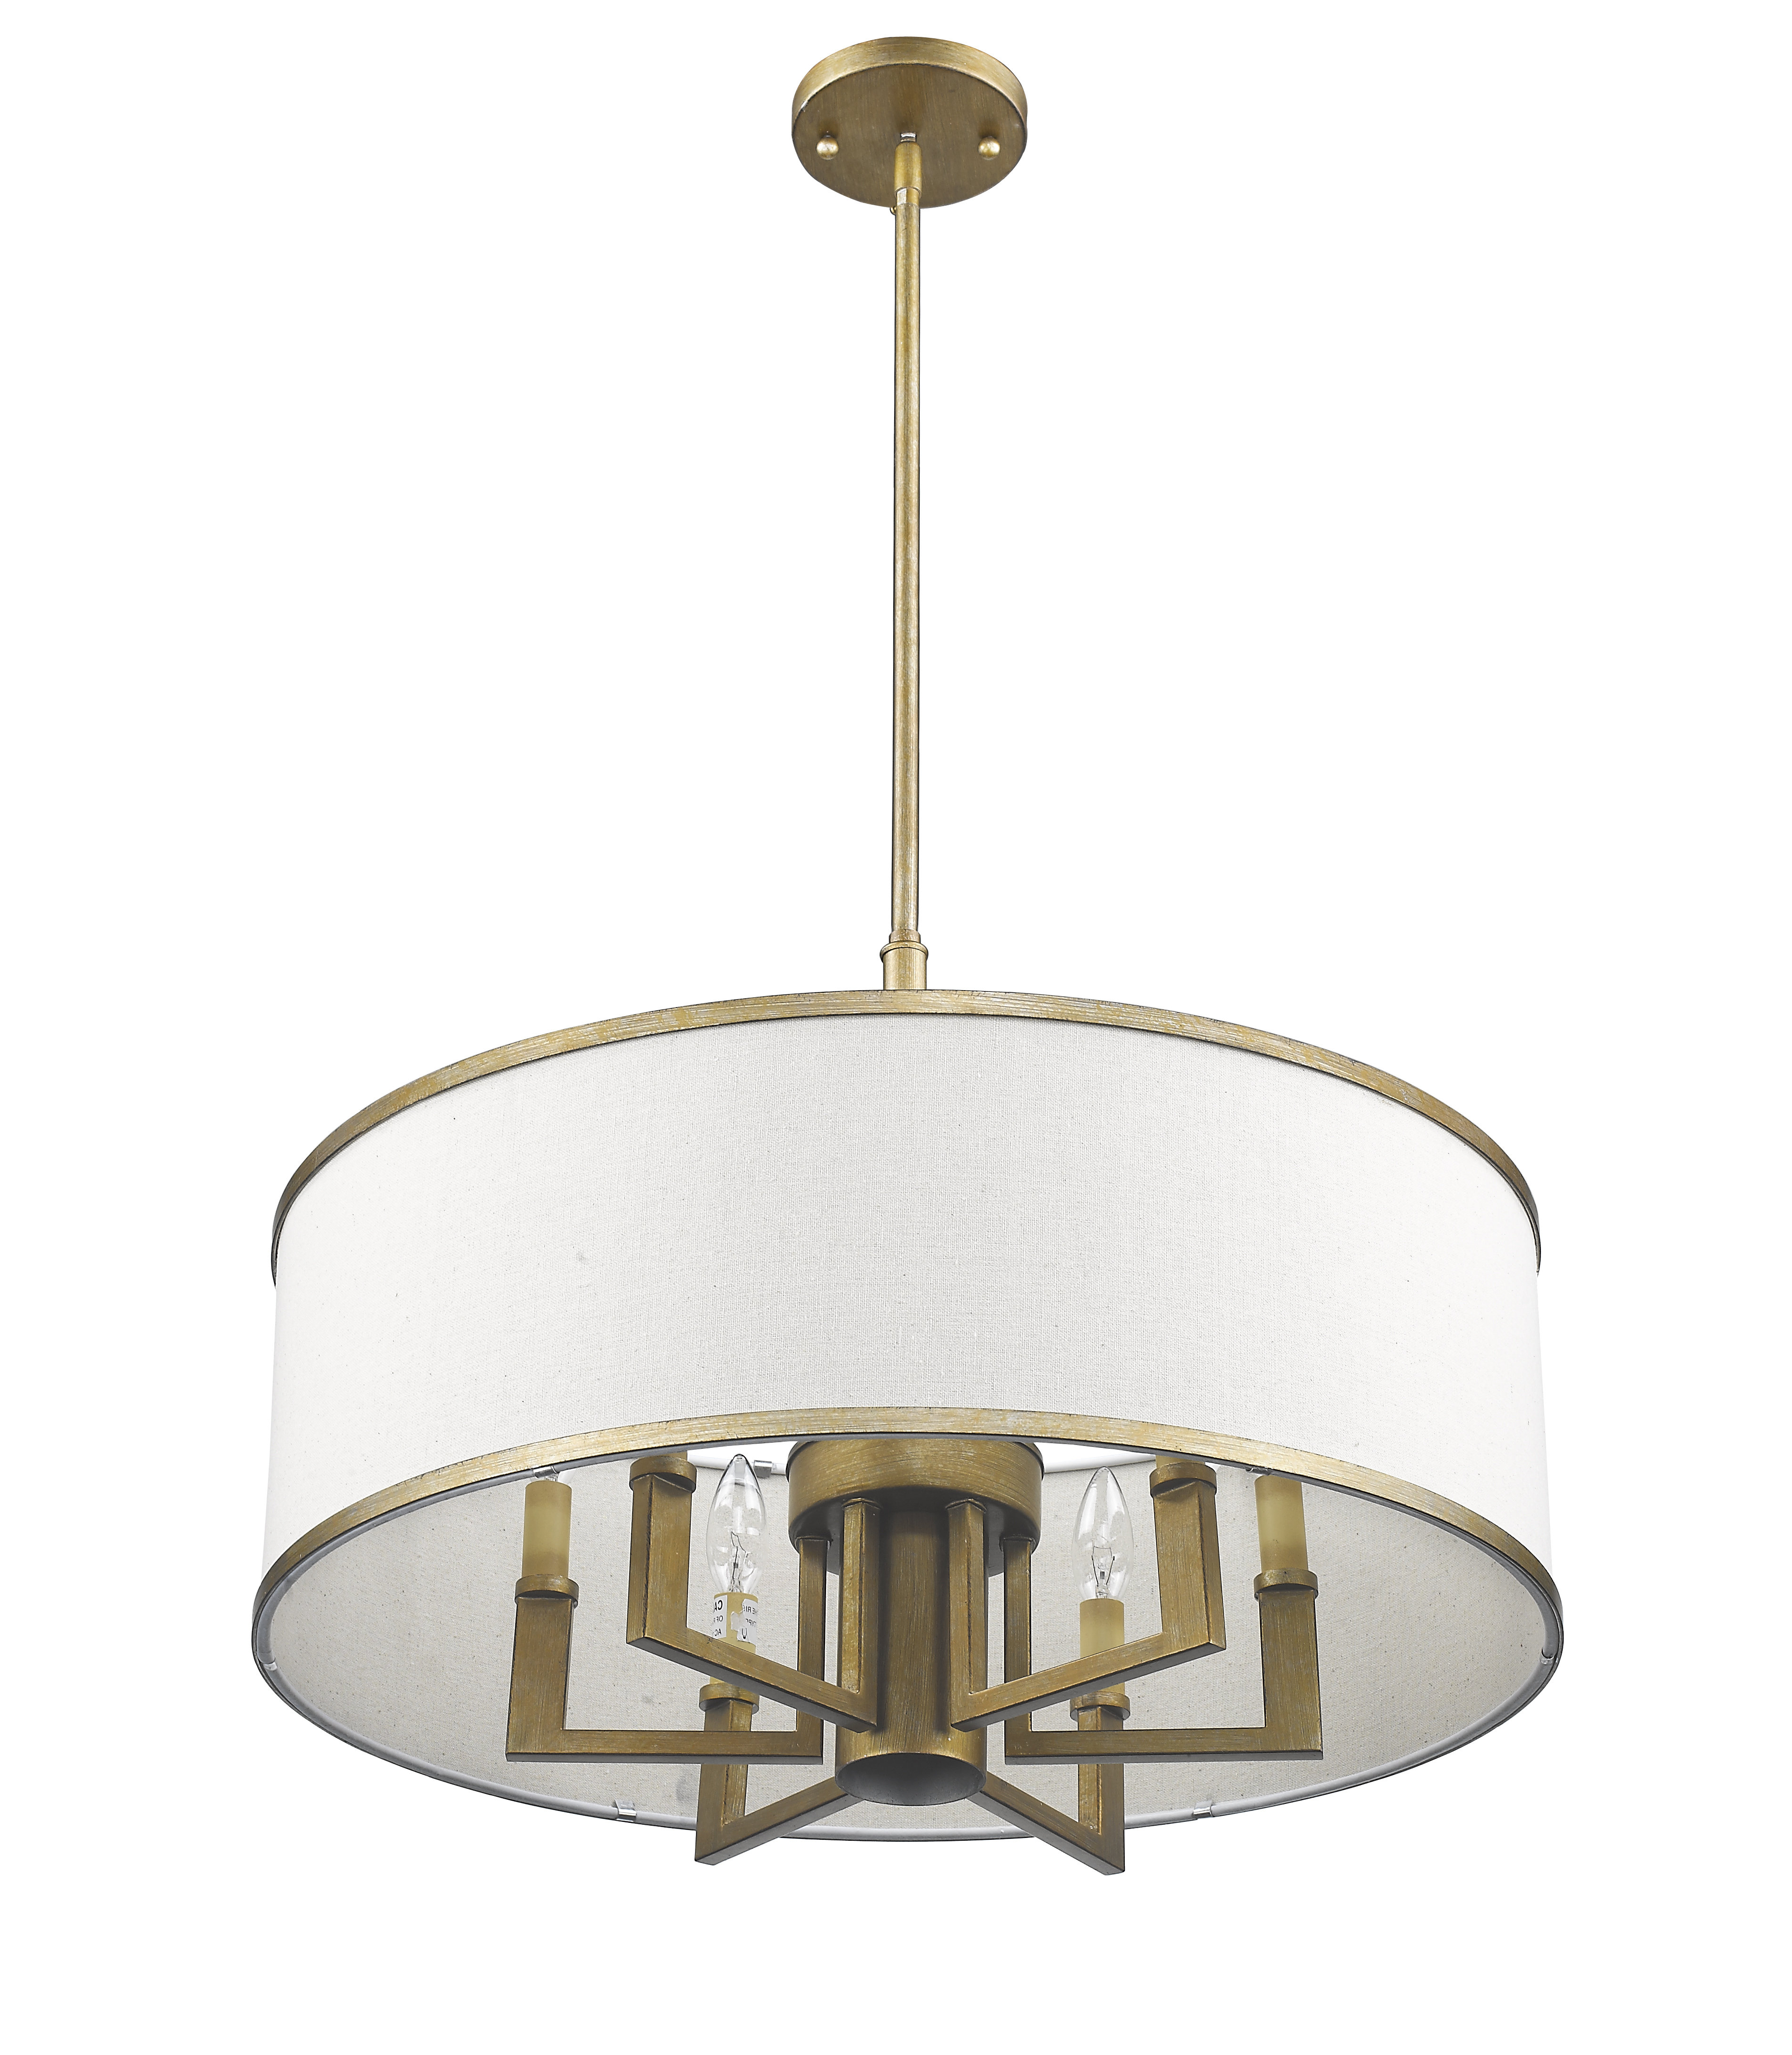 Breithaup 4-Light Drum Chandeliers with regard to Famous Breithaup 7-Light Drum Chandelier